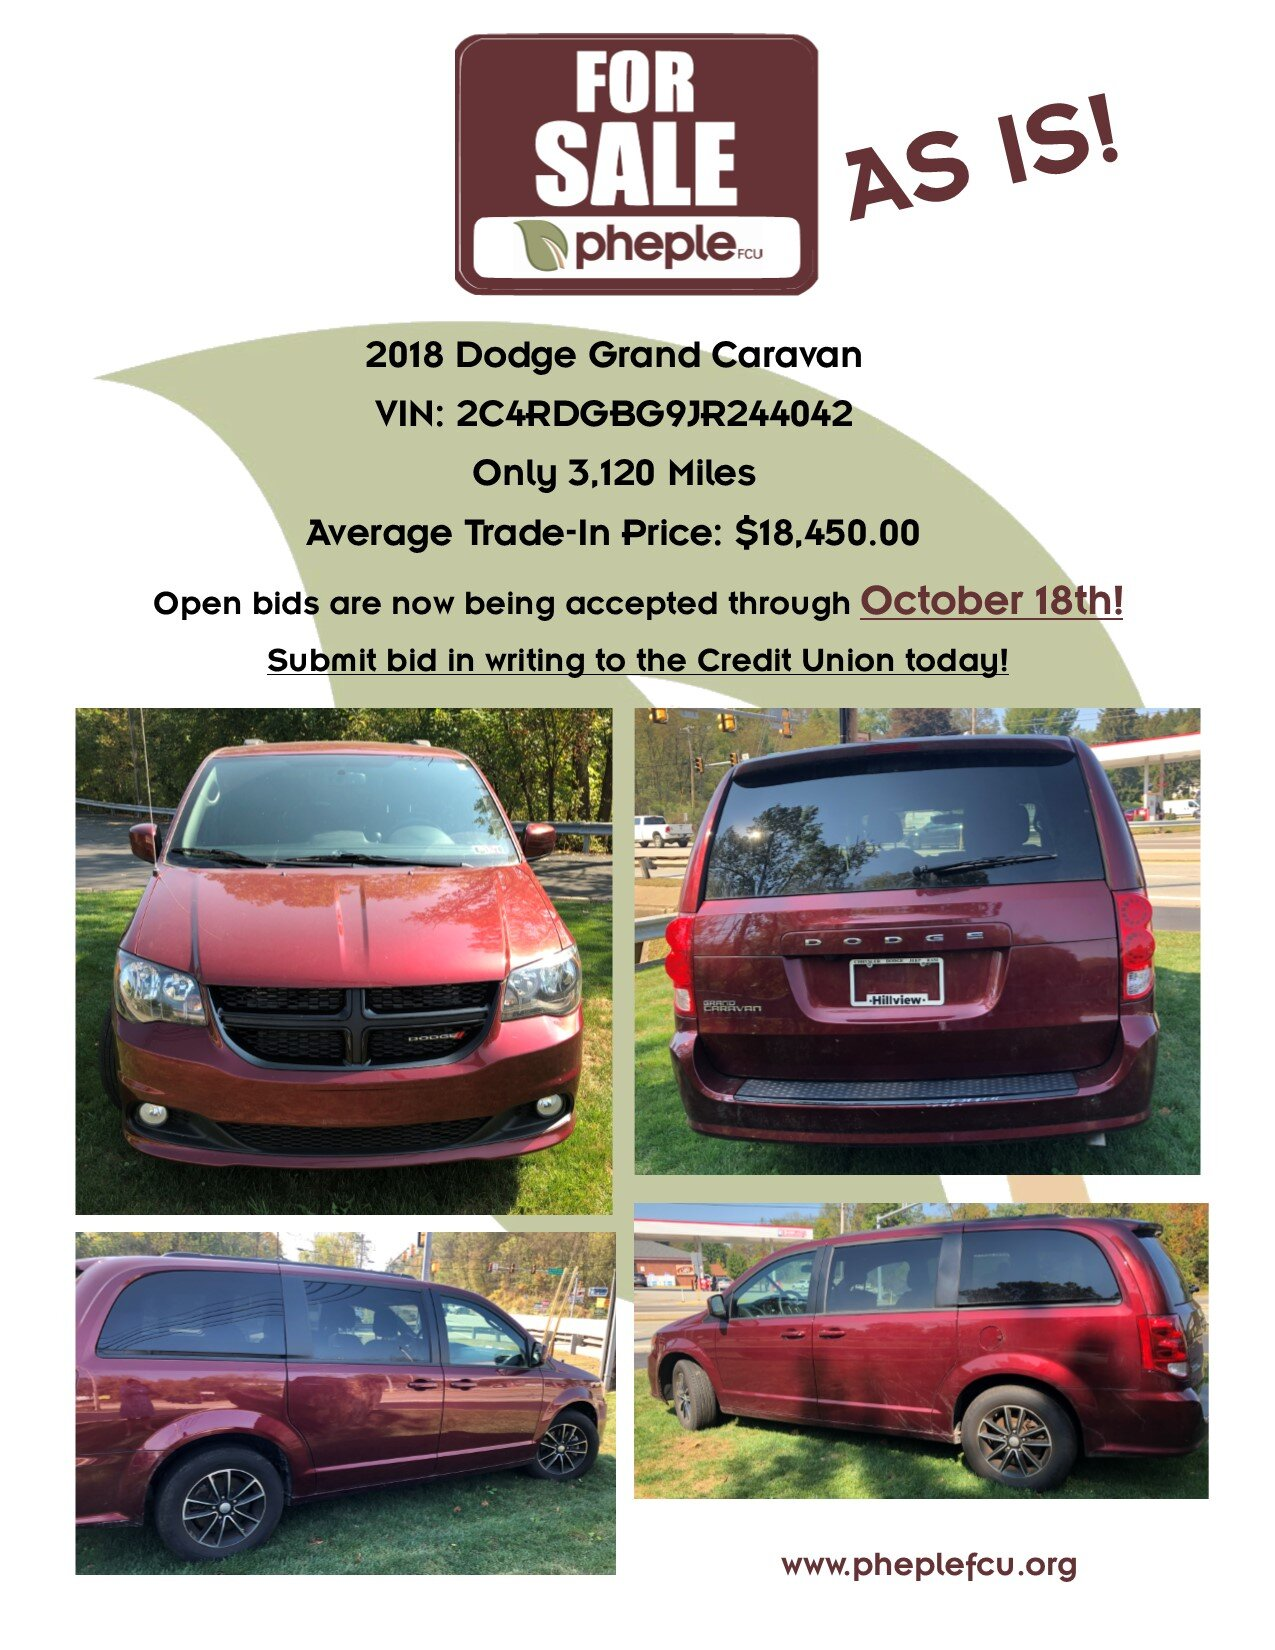 car-for-sale-as-is-2018-Dodge-Grand-Caravan-VIN-2C4RDGBG9JR244042-Only-3120-Miles-Average-Trade-In-Price-18,450.00-dolalrs-Open-bids-are-now-being-accepted-through-October-18th-Submit-bid-in-writing-to-the-Credit-Union-today